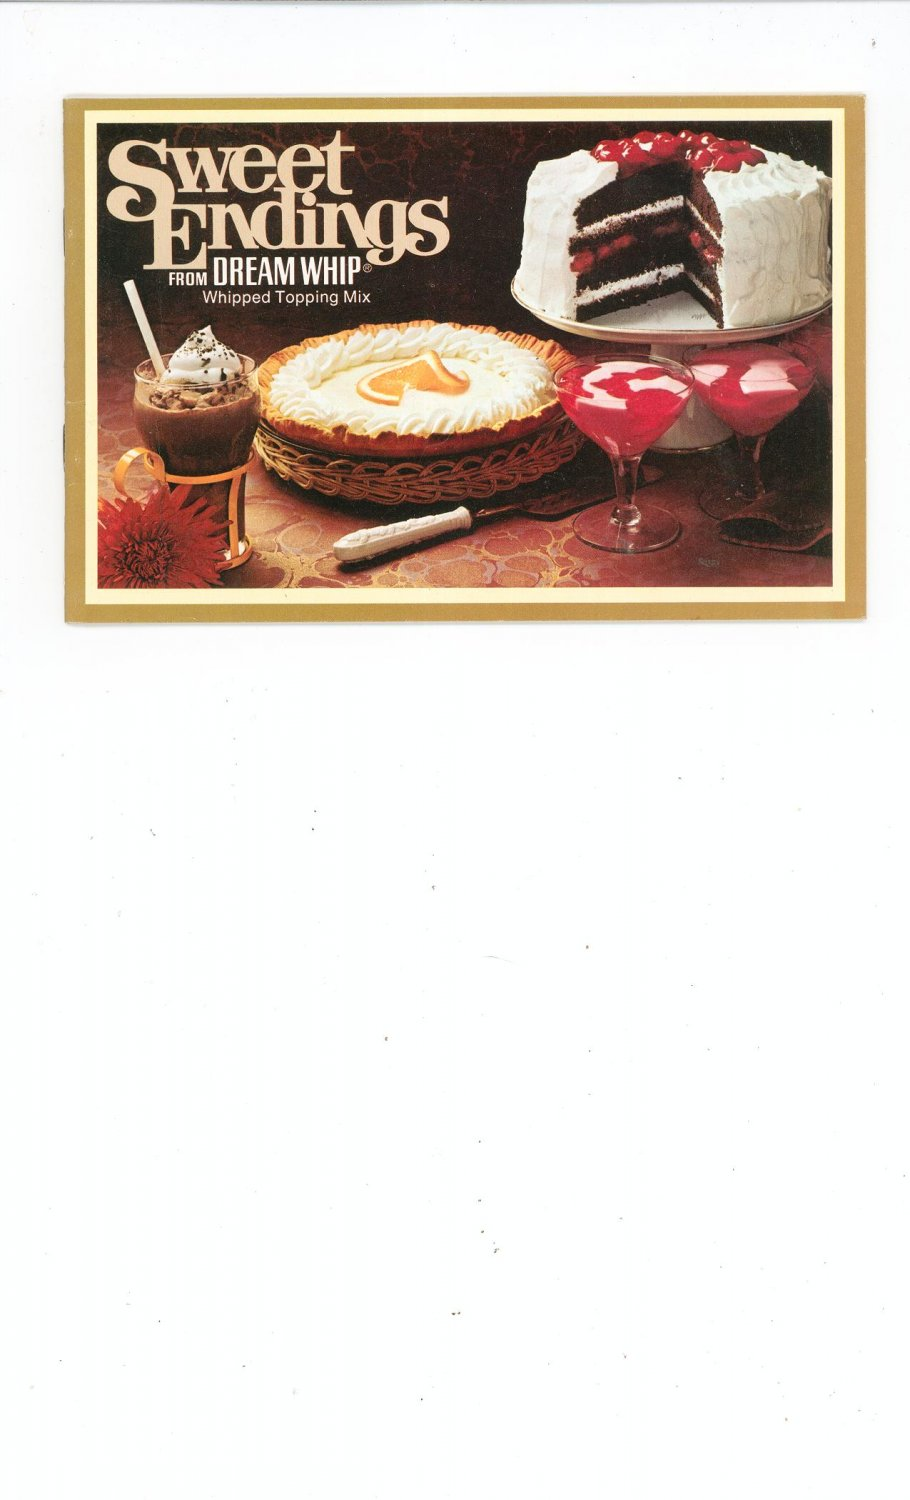 Sweet Endings Cookbook From Dream Whip Topping First Edition 1974